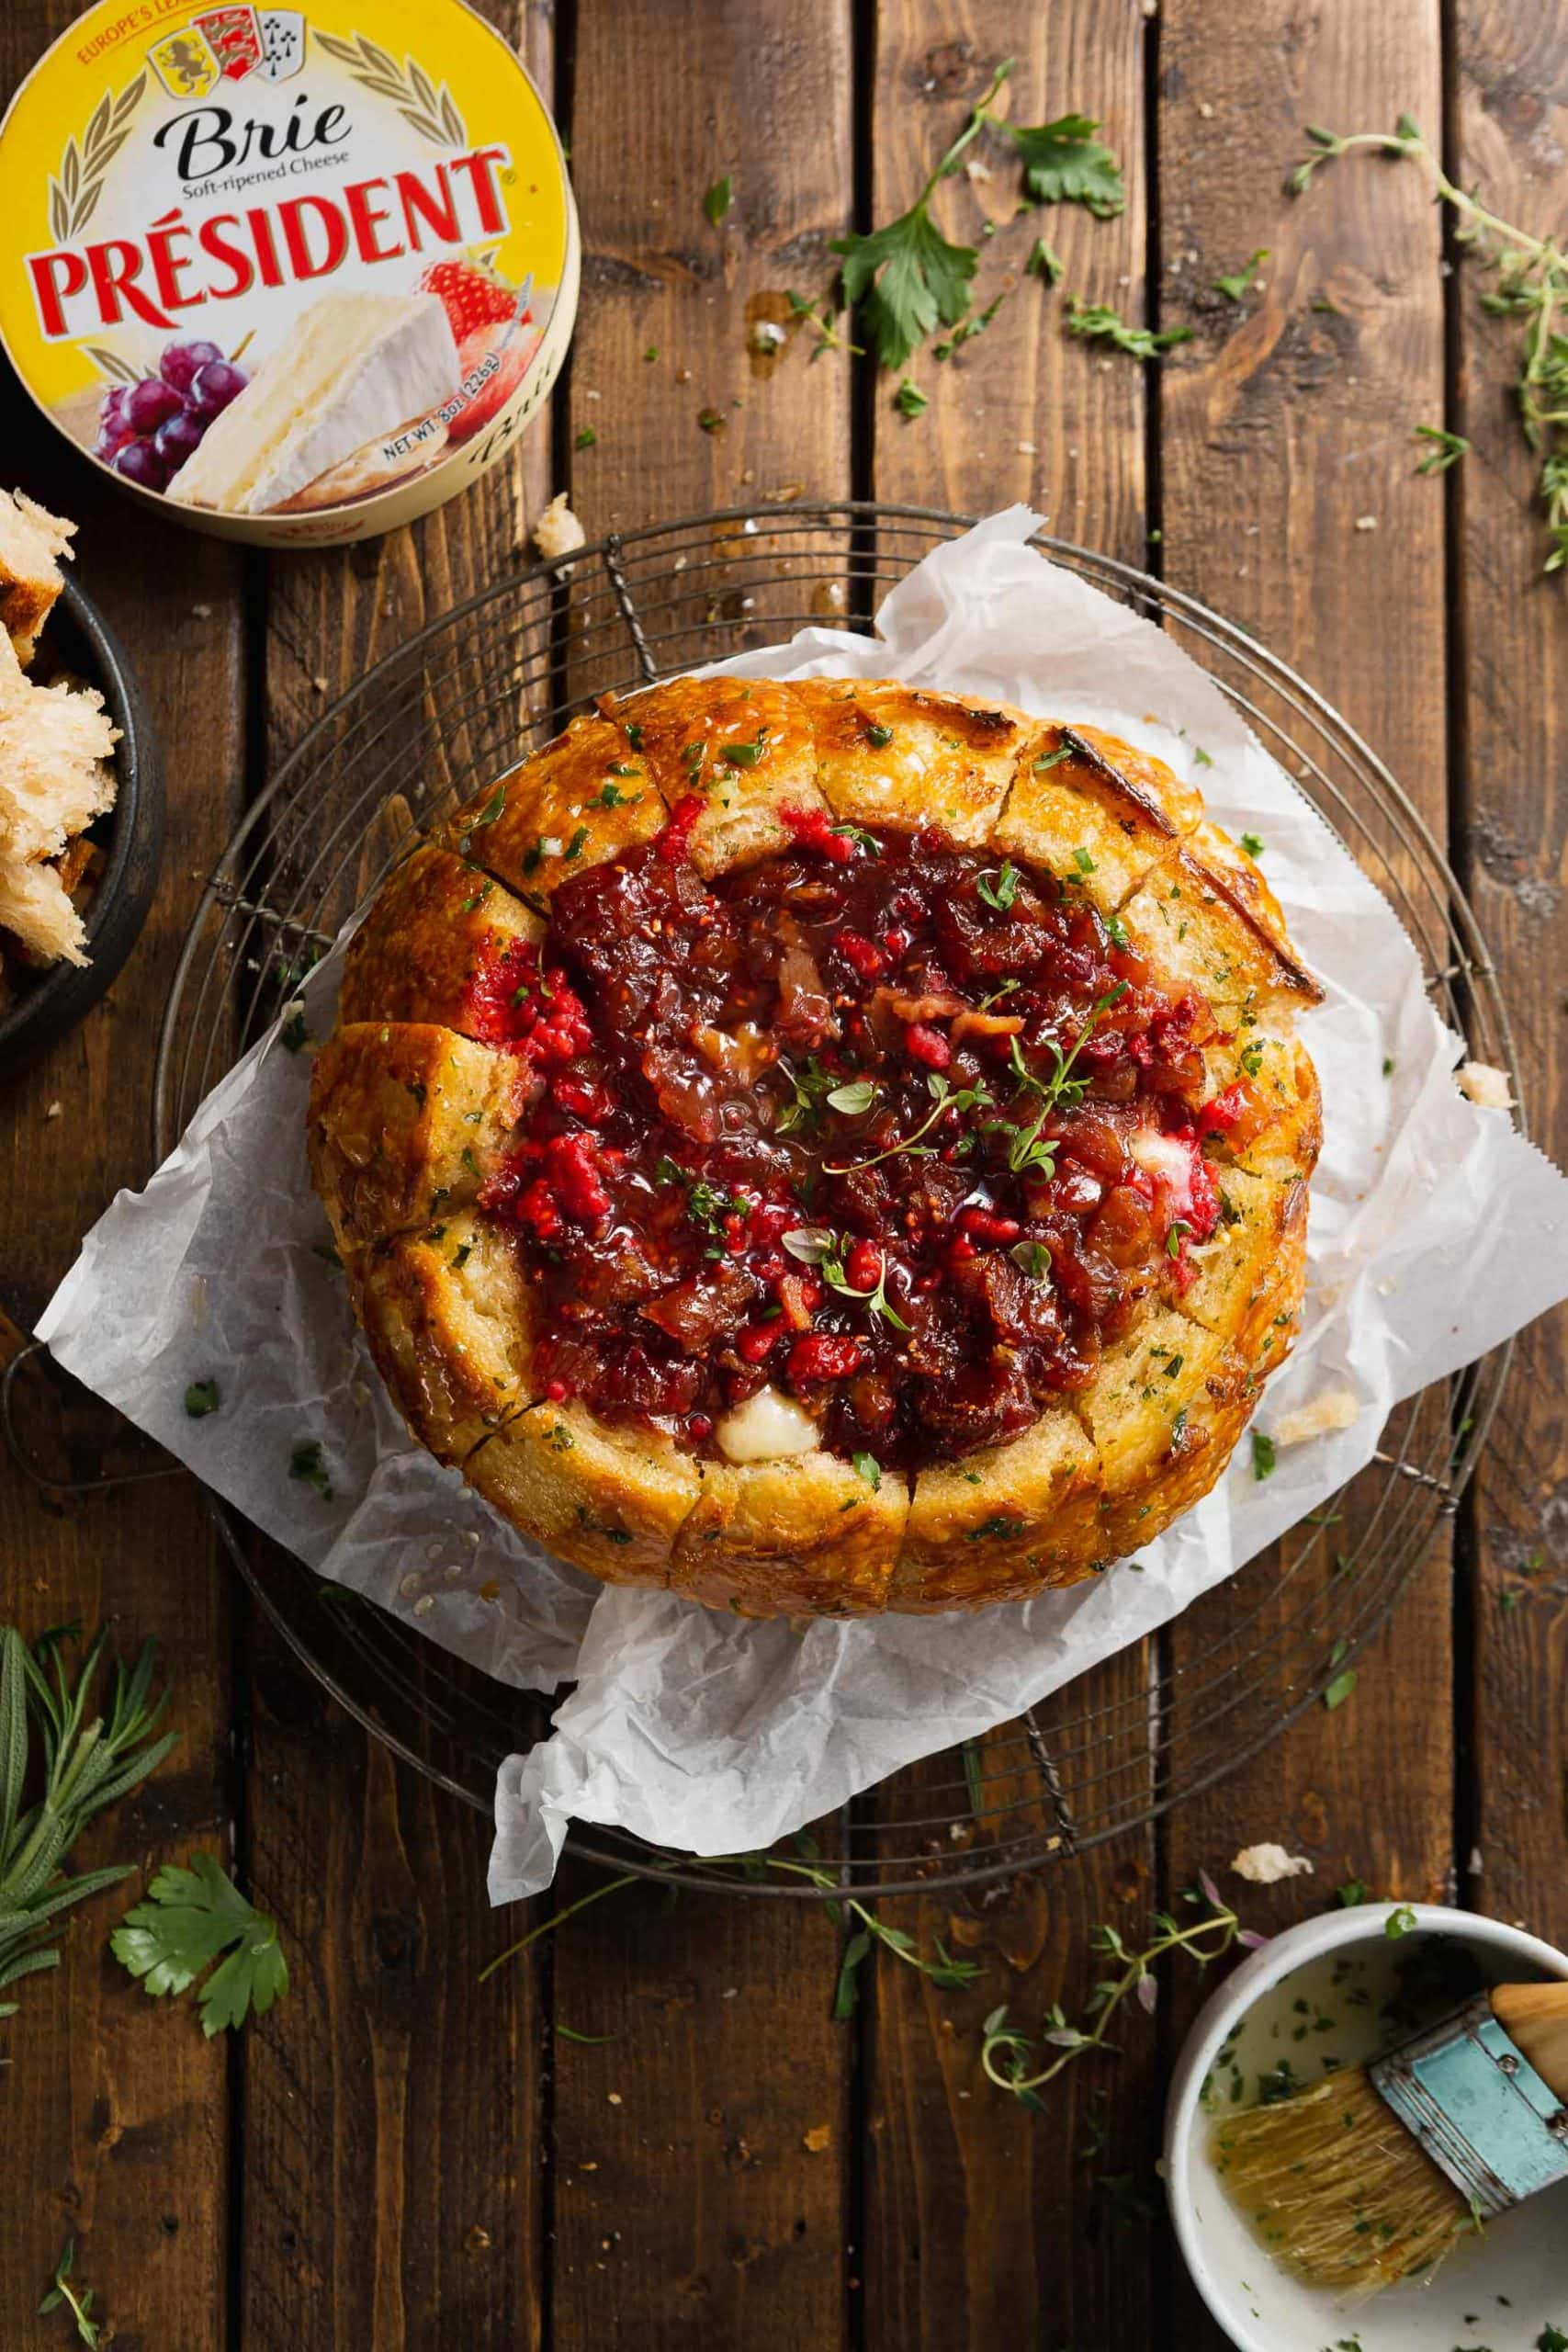 A bread bowl filled with brie and topped with a raspberry onion jam.